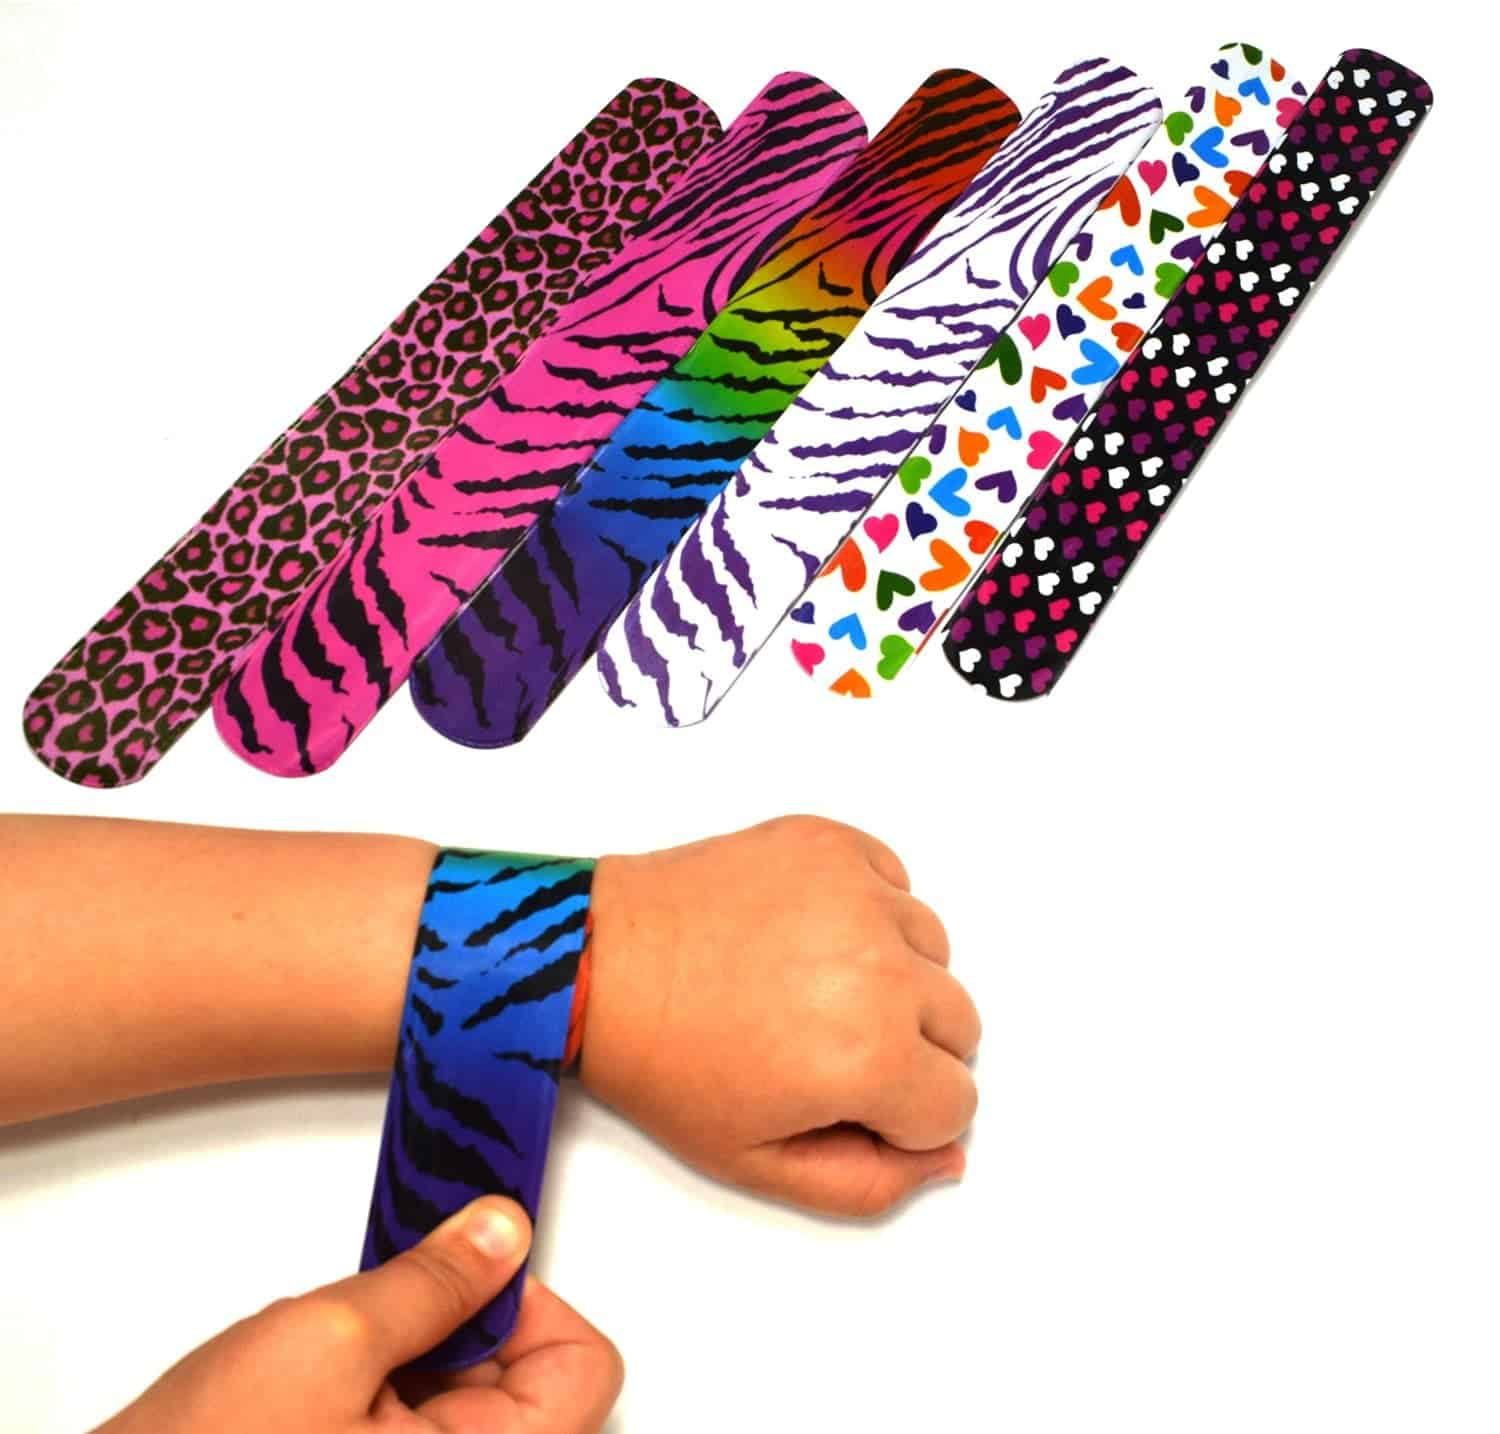 10+ Great Halloween Treats to Give out that Aren't Candy: Slap Bracelets | www.thepinningmama.com